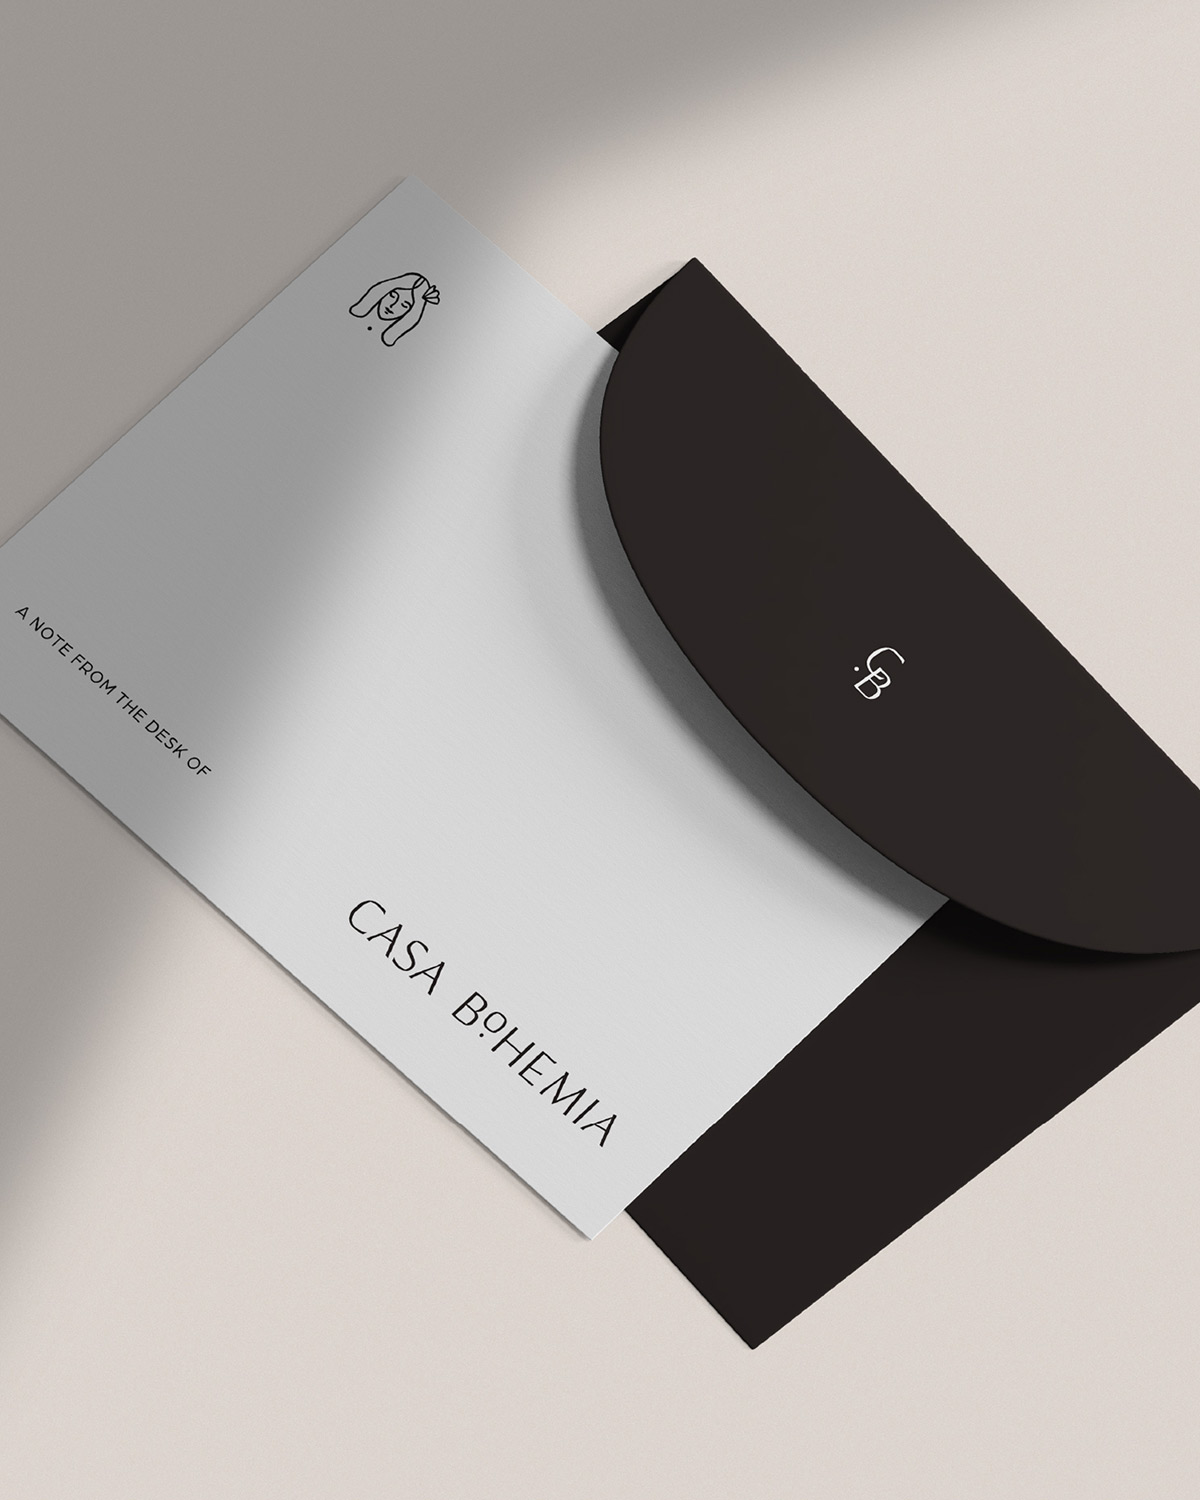 Black and white note card and envelope designed for Casa Bohemia